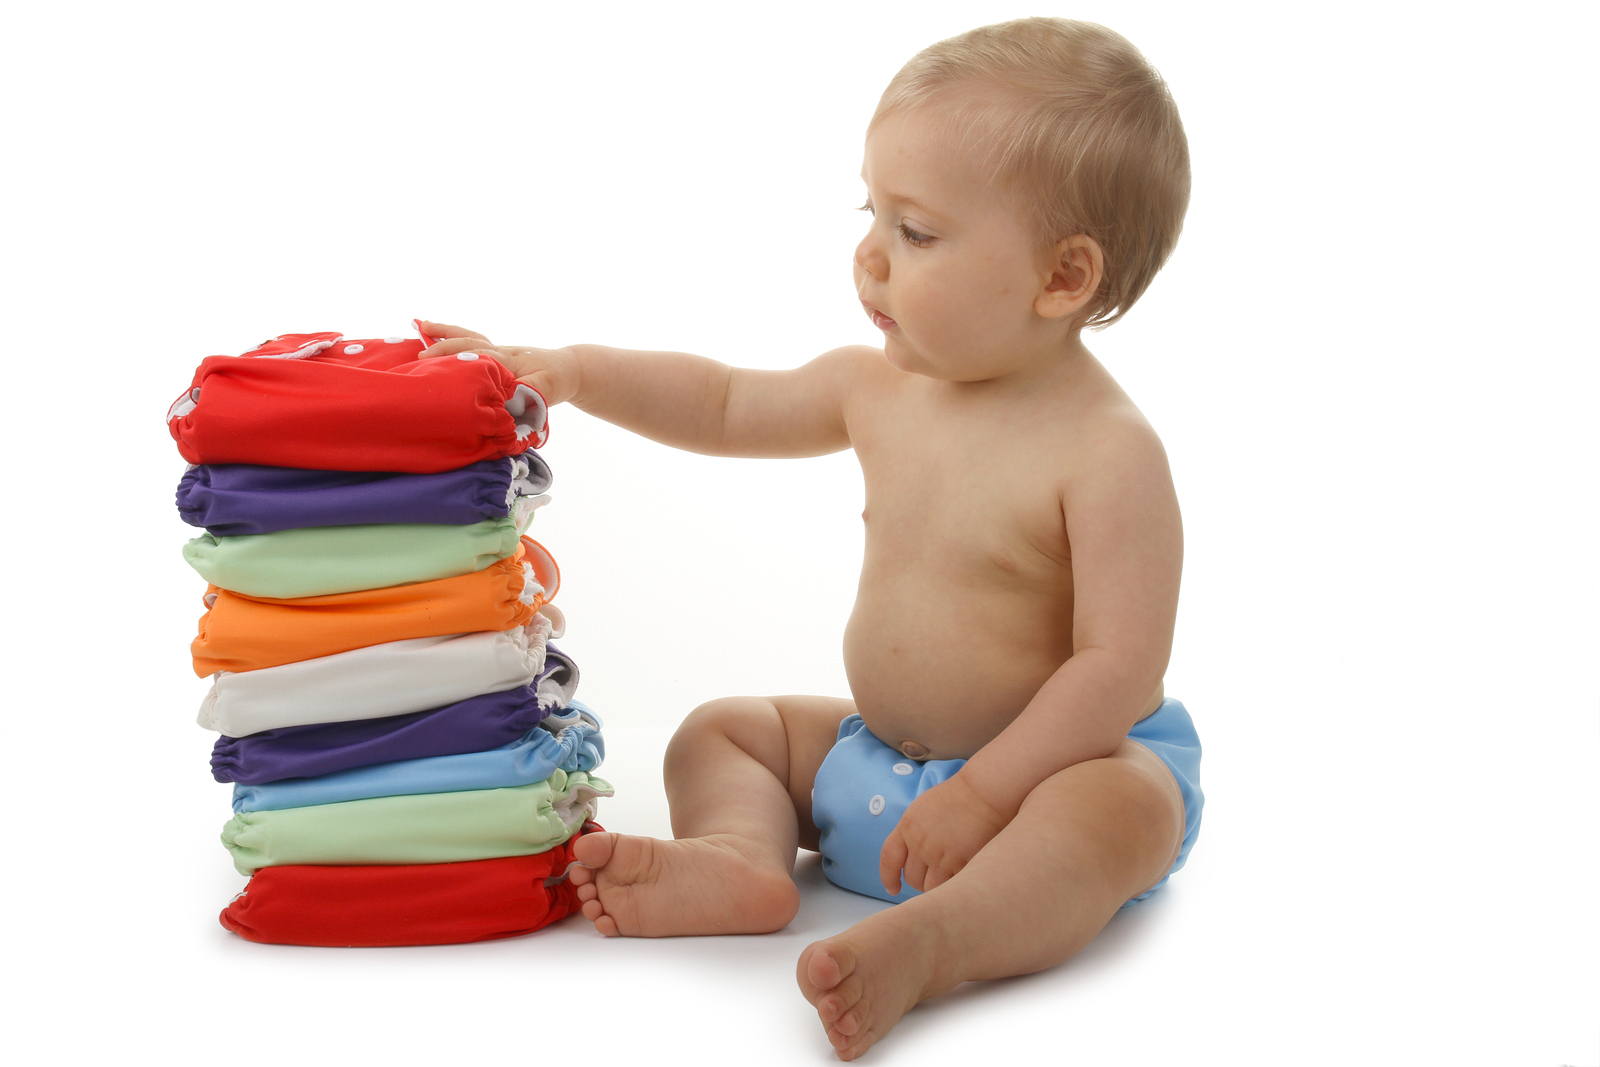 Do you truly save money with cloth diapers?